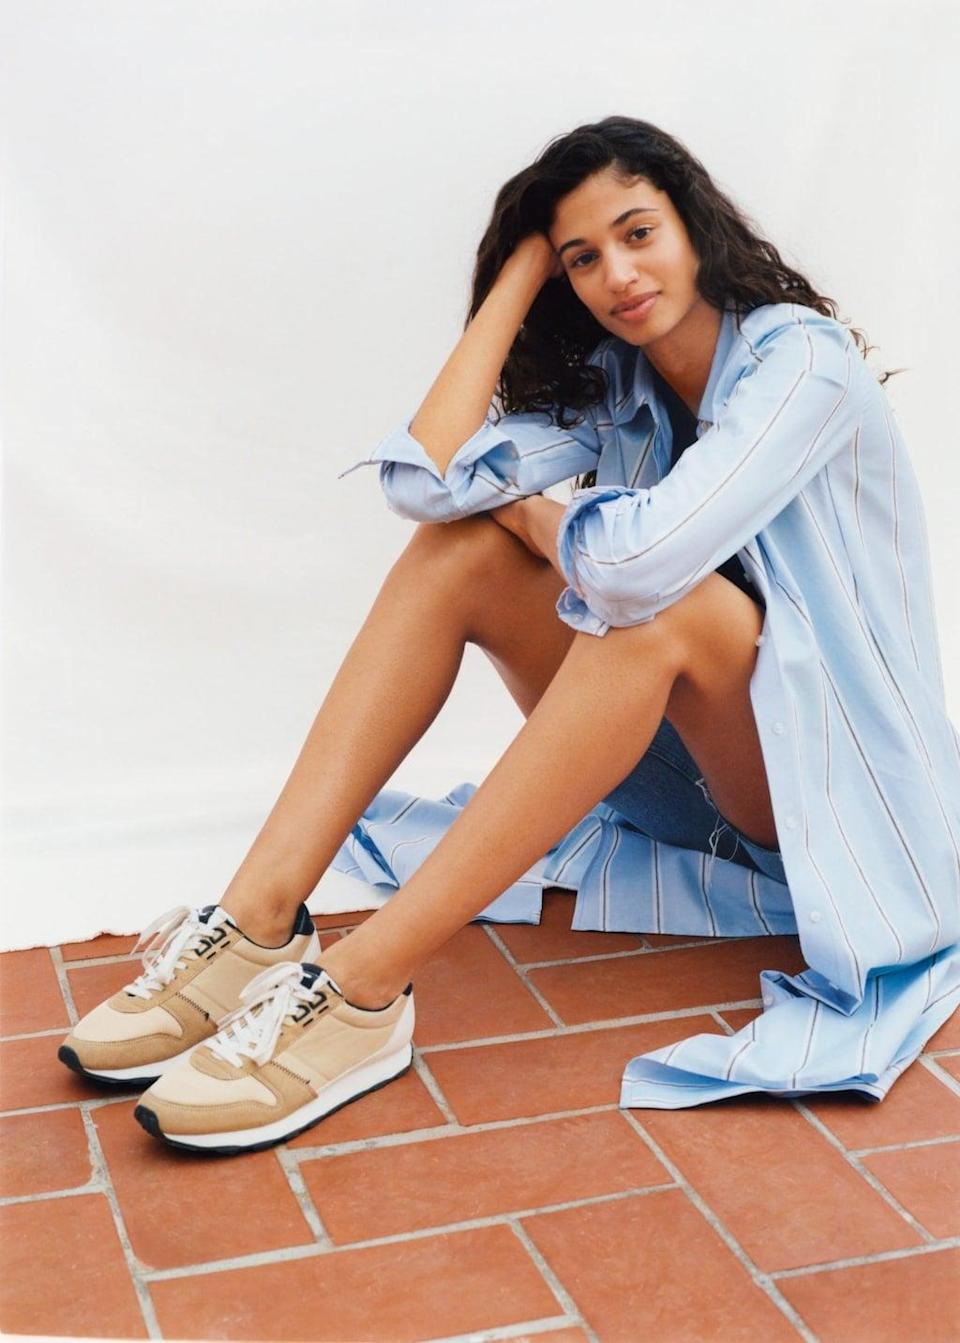 <p>A retro sport sneaker with stripes, reminiscent of a '70s running shoe, makes a comeback this year, and looks perfect with a pair of cutoffs and a casual button-down. While you could go for natural tones, there are plenty of quirky colorblock styles that have a modern feel to them.</p> <p><span>Mango Platform Lace-Up Sneakers</span> ($80)</p>